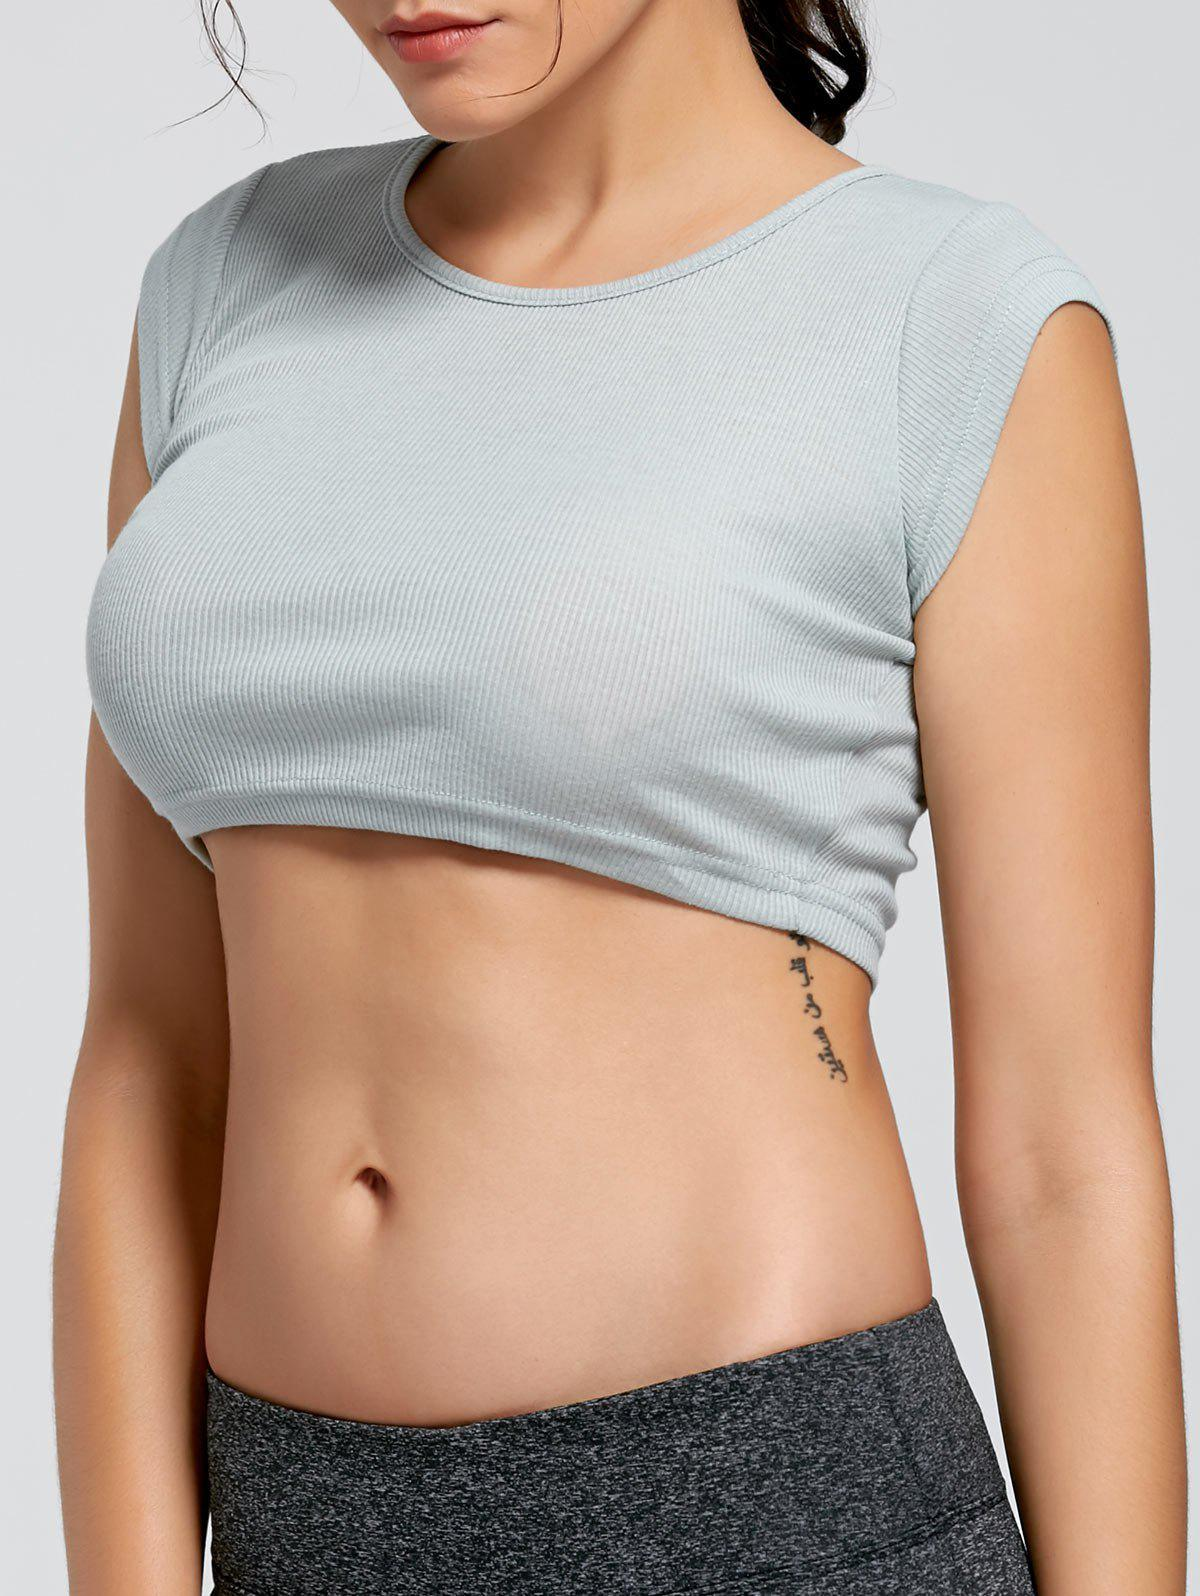 Ribbed Crop T shirt 218097302